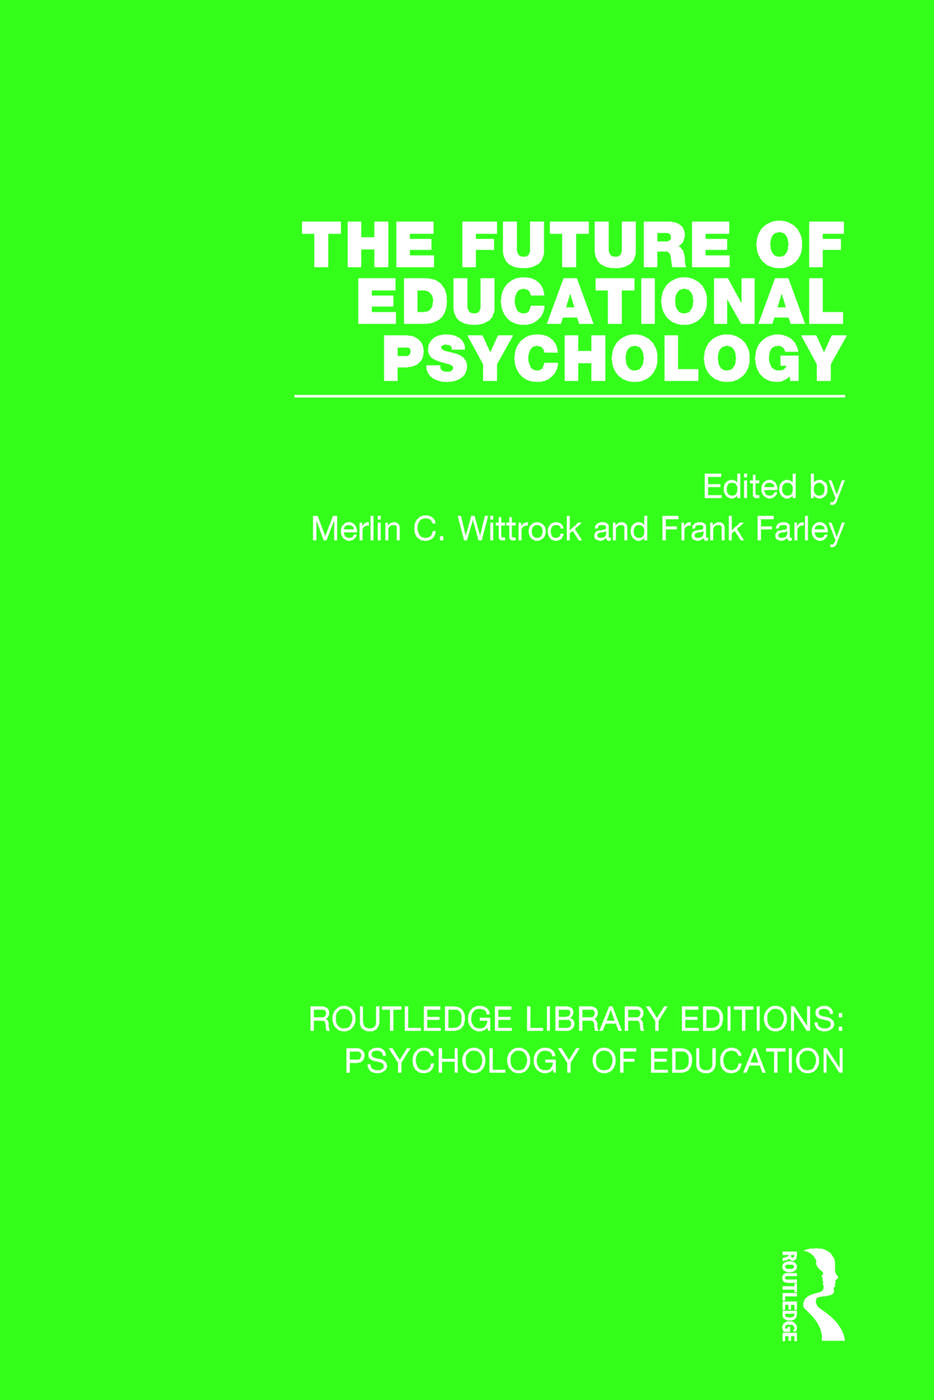 The Future of Educational Psychology